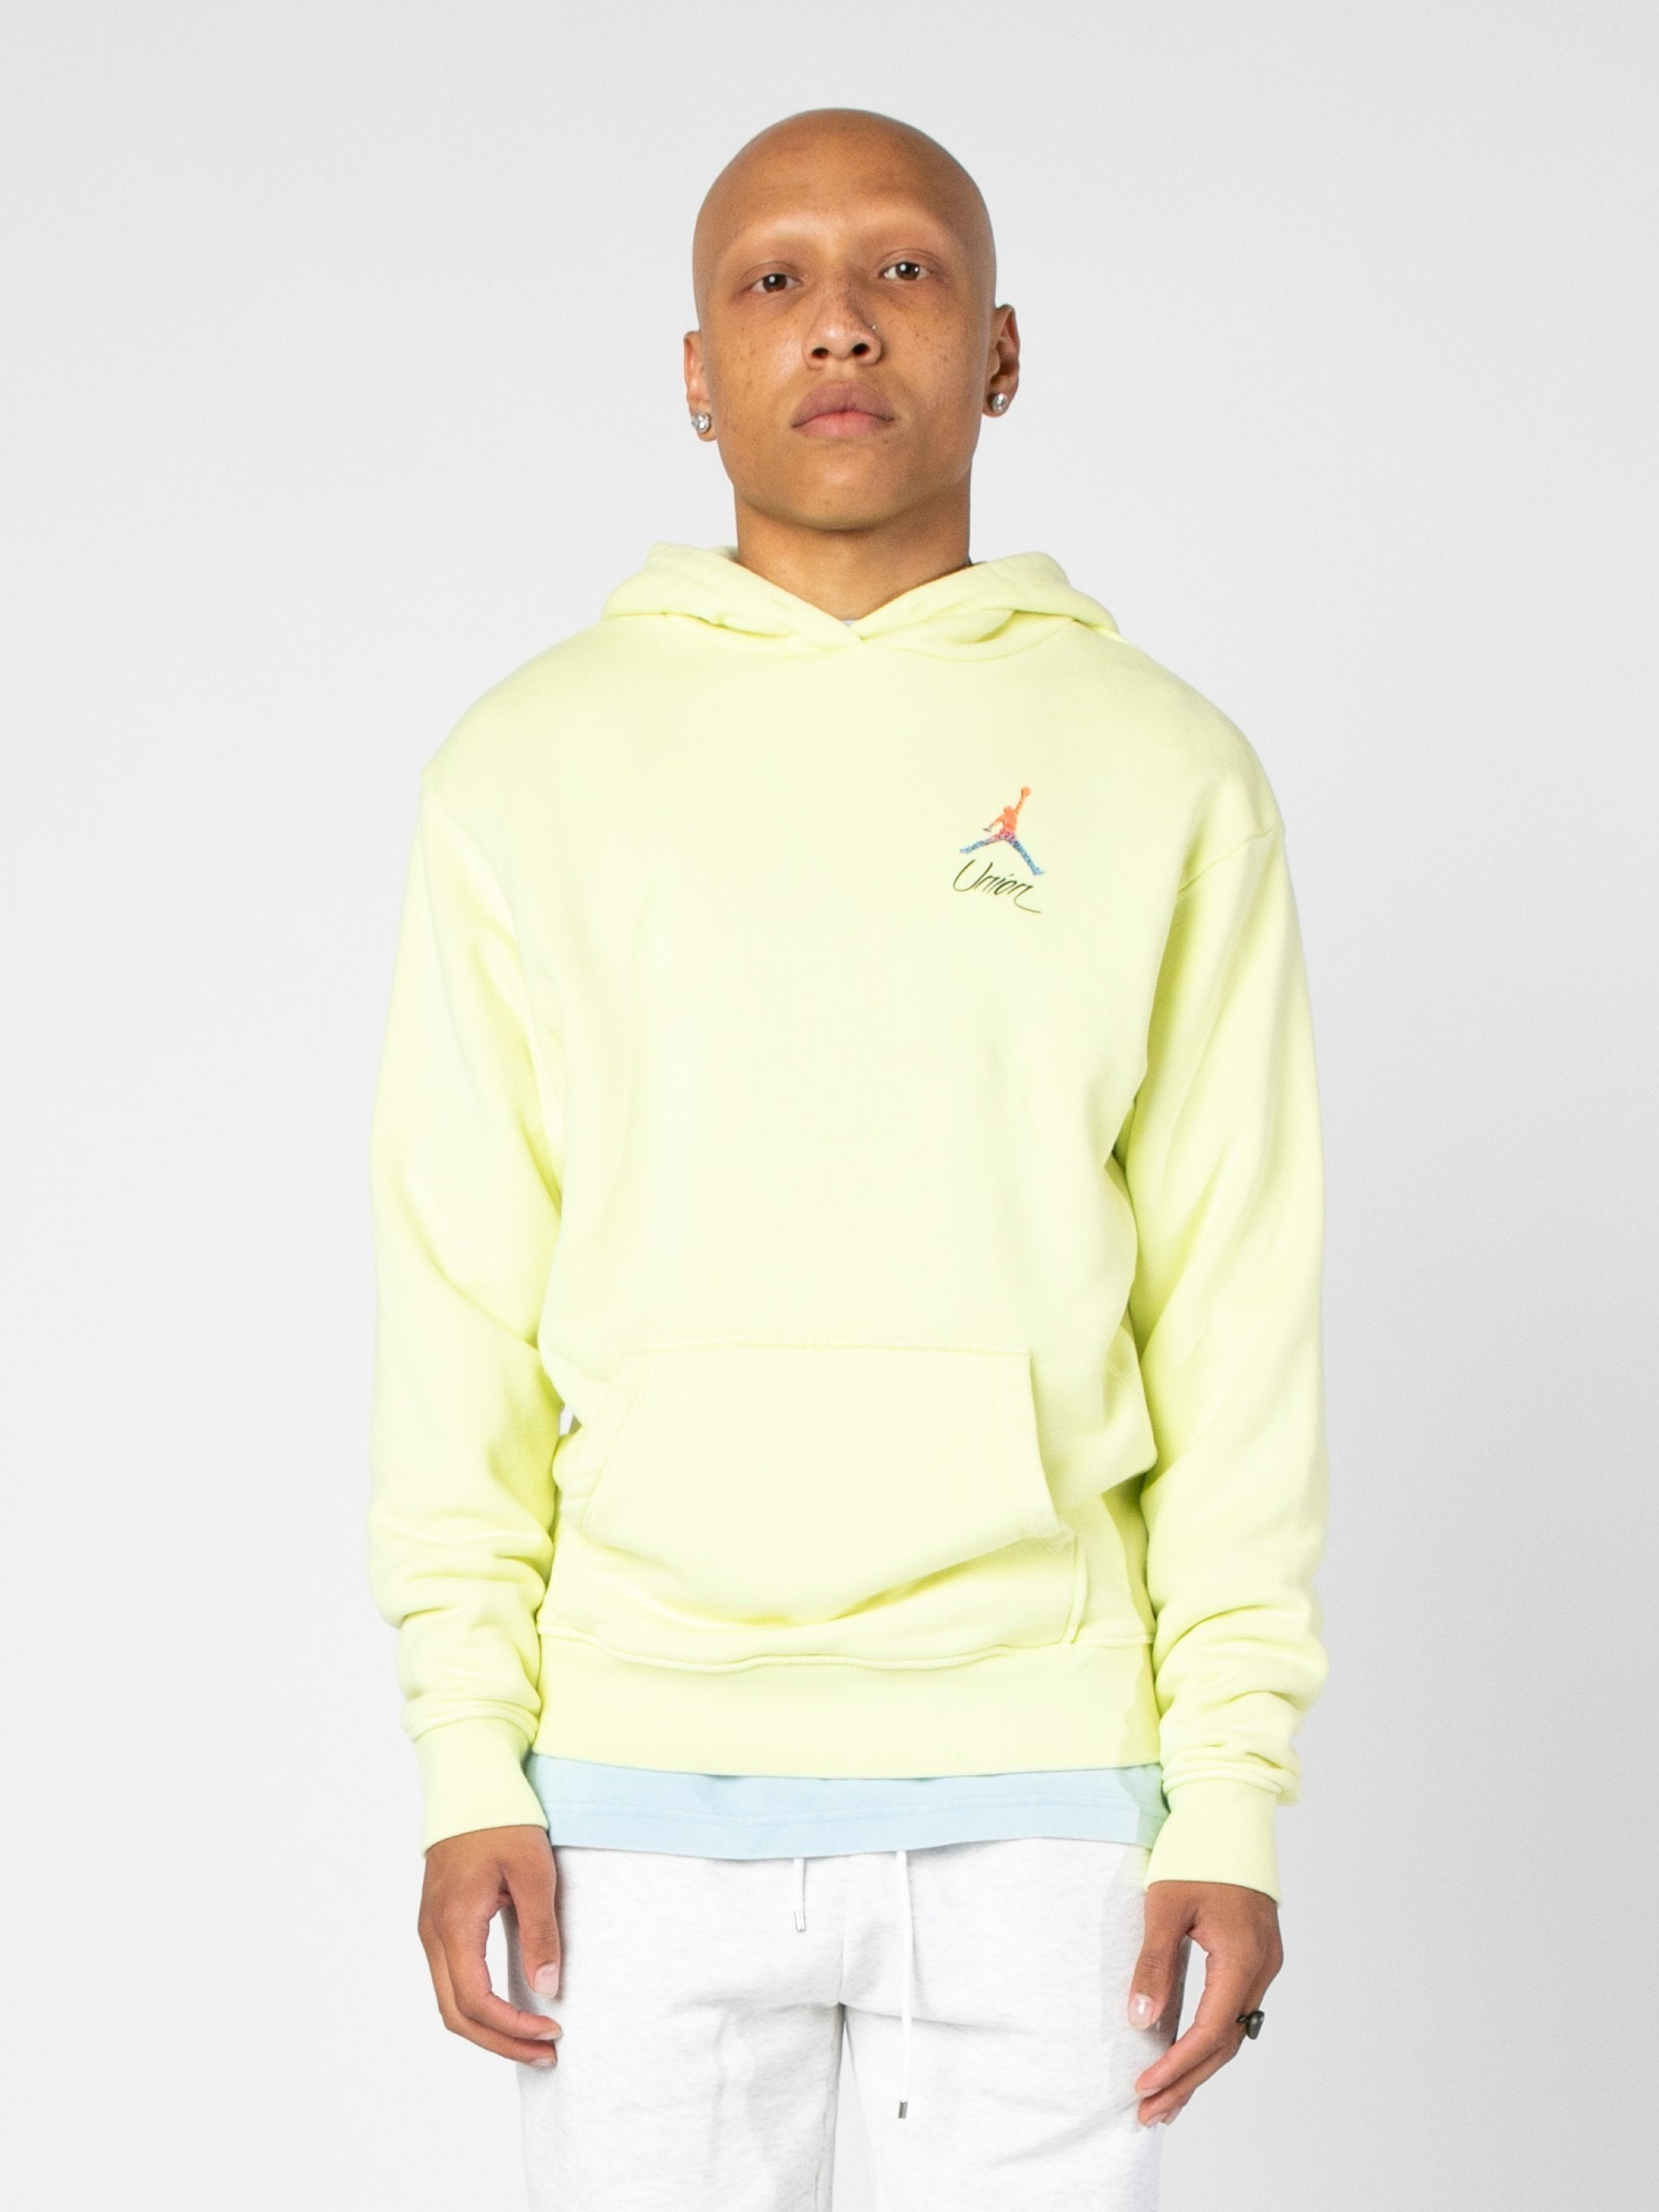 Luminous Green (Pale Yellow) Jordan x Union 2.0 PO Hoody 2